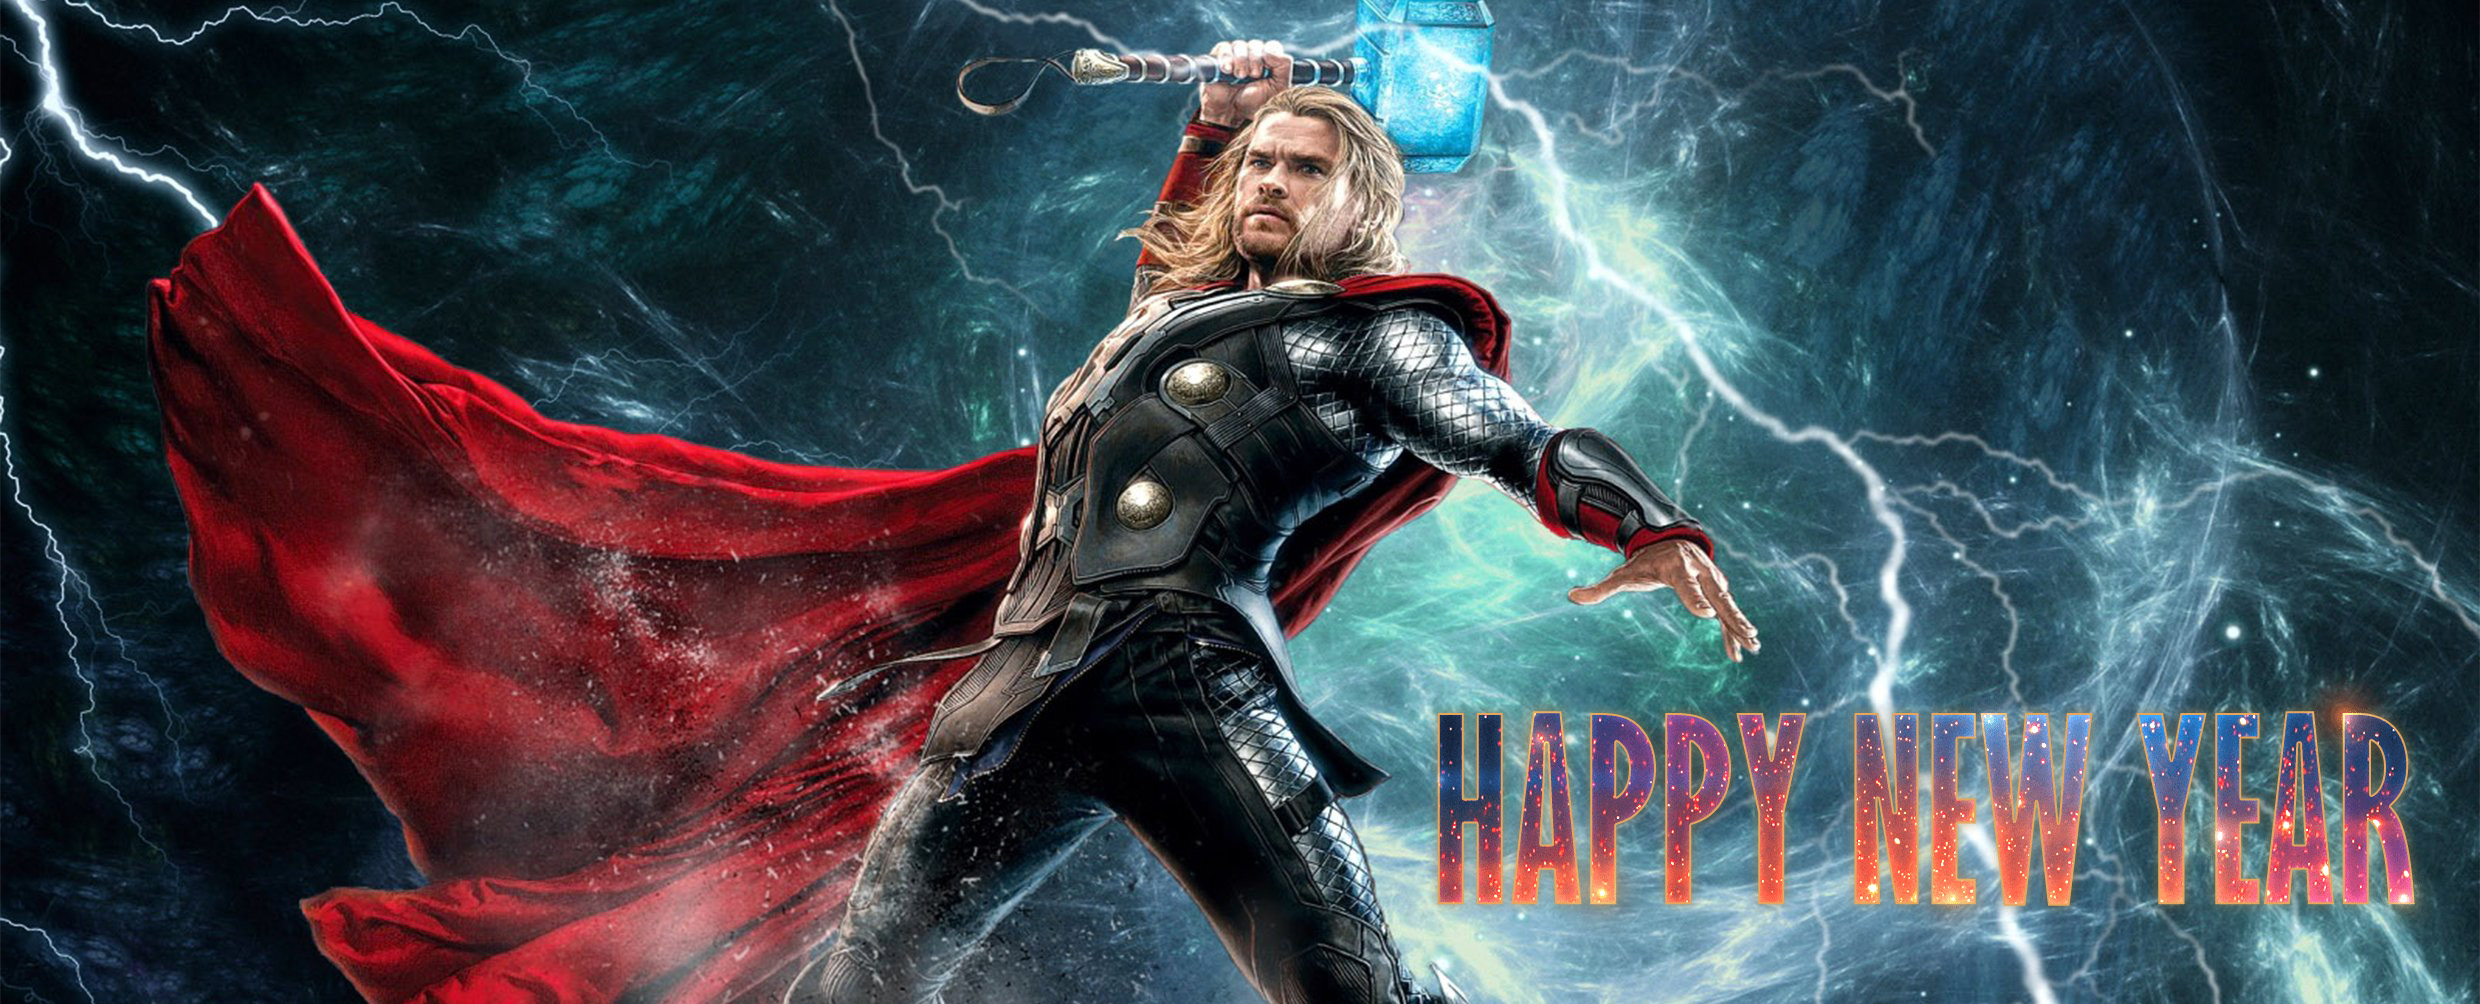 happy new year wishes super hero thor kids hd wallpaper